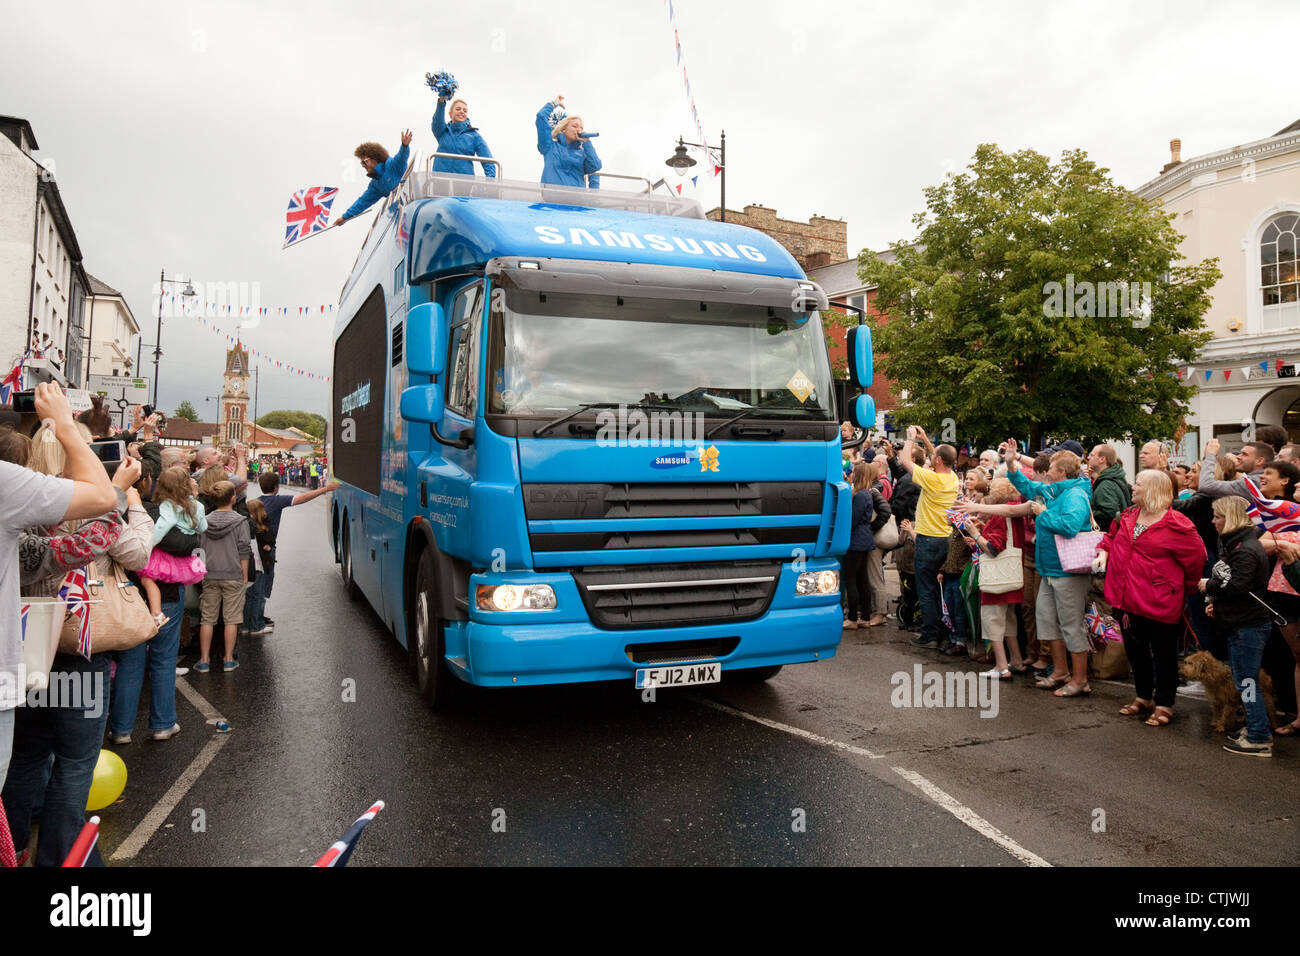 The Samsung 2012 Olympic Sponsor vehicle at the Torch Relay through Newmarket Suffolk East Anglia UK - Stock Image